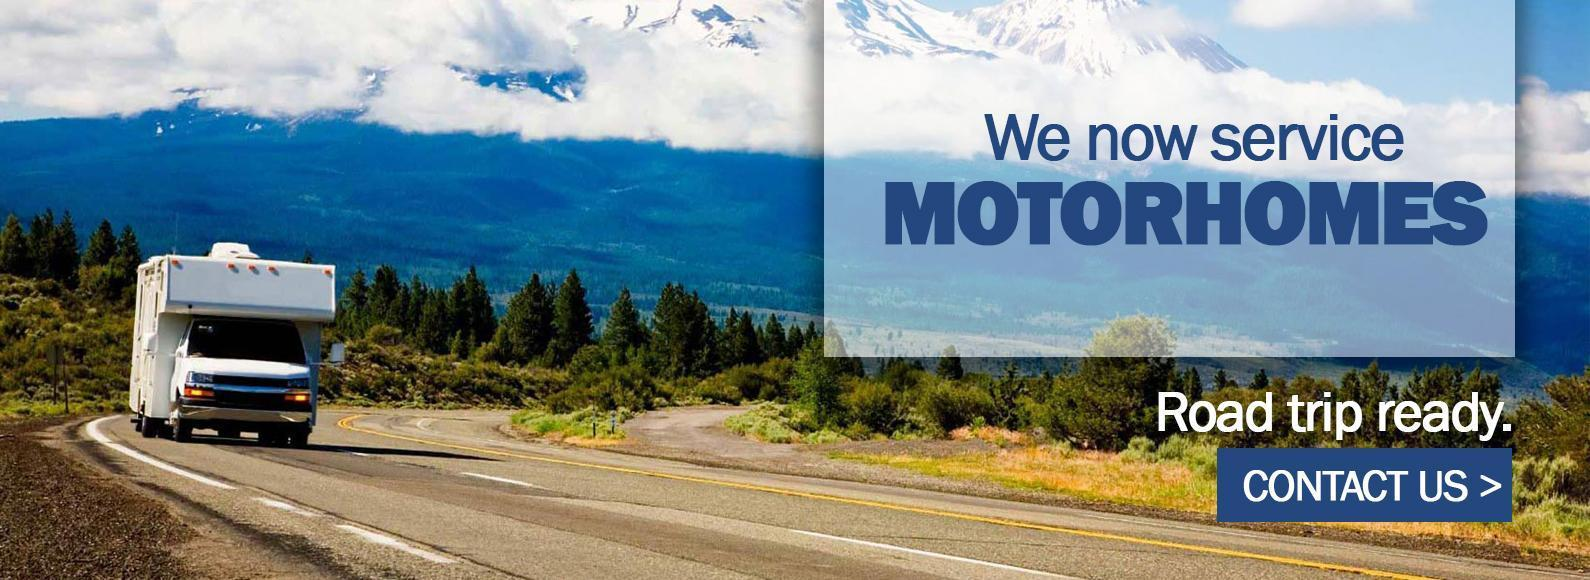 Ford Home We now service Motorhomes